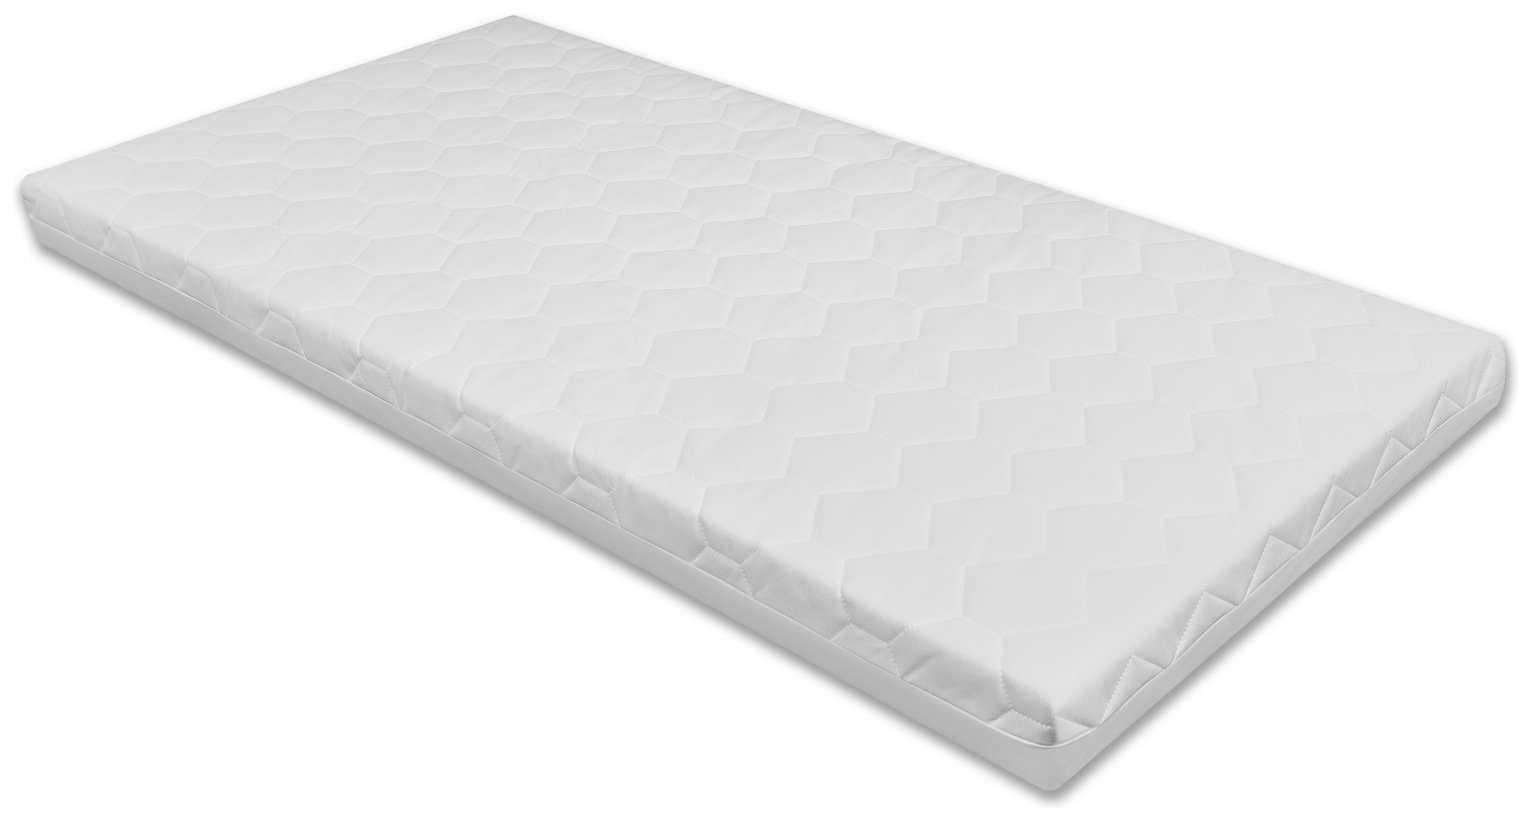 Mamas & Papas Foam Cot Bed Mattress140 x 70cm